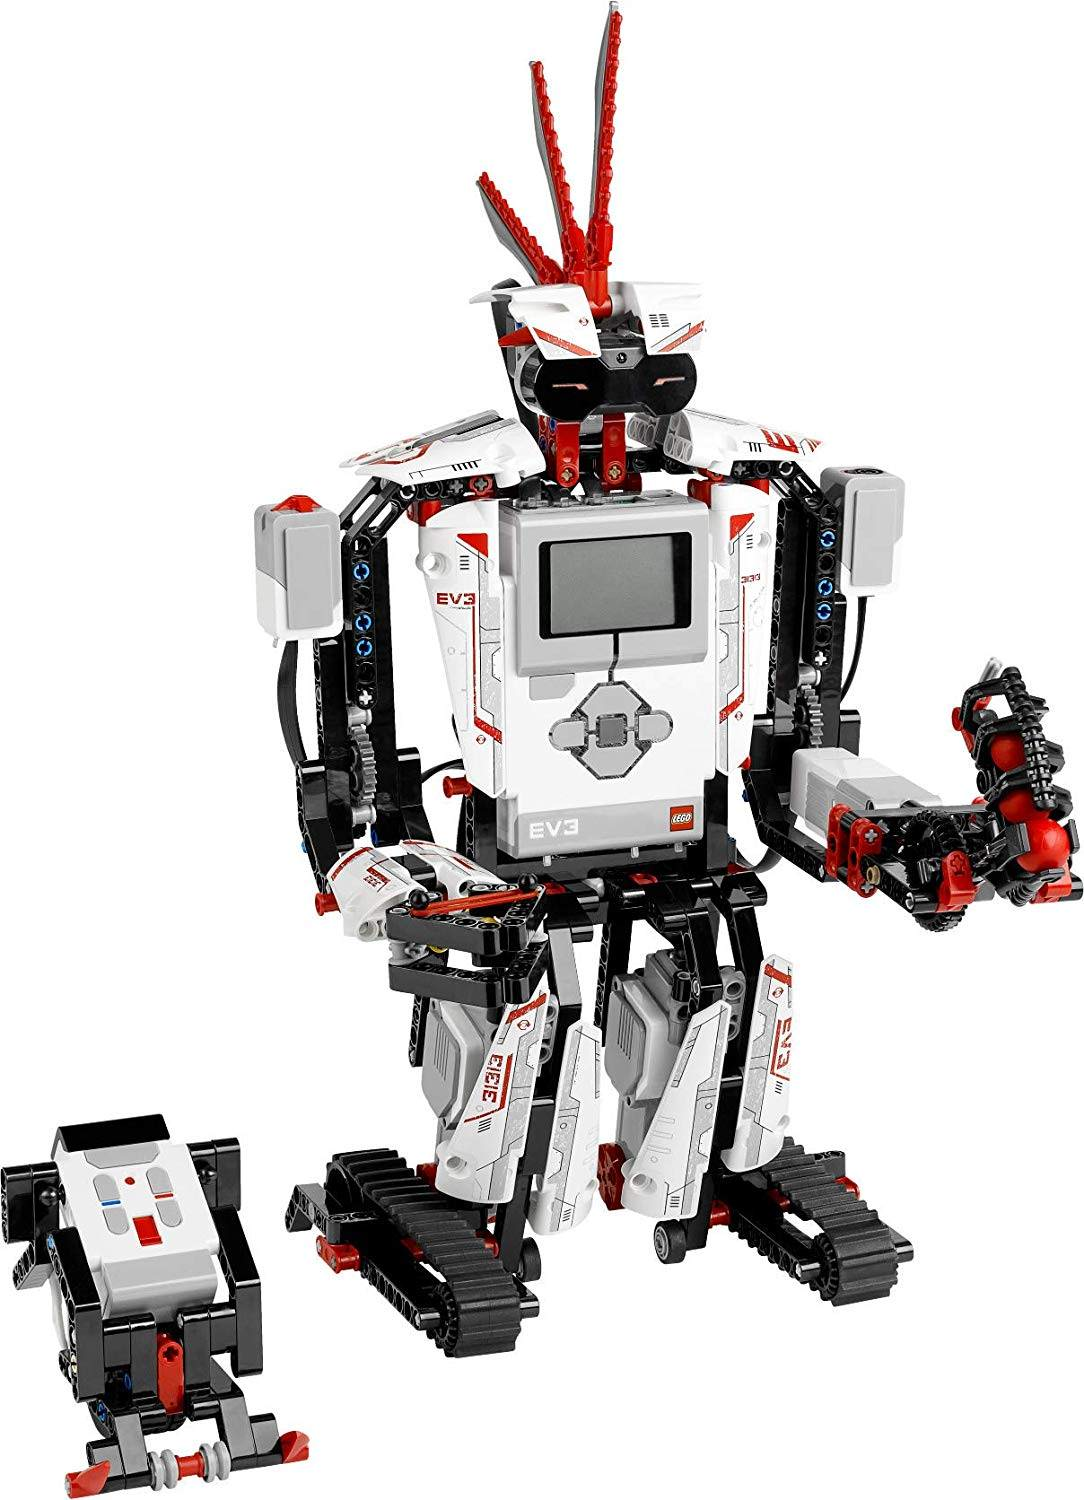 LEGO MINDSTORMS EV3 31313 Robot Kit